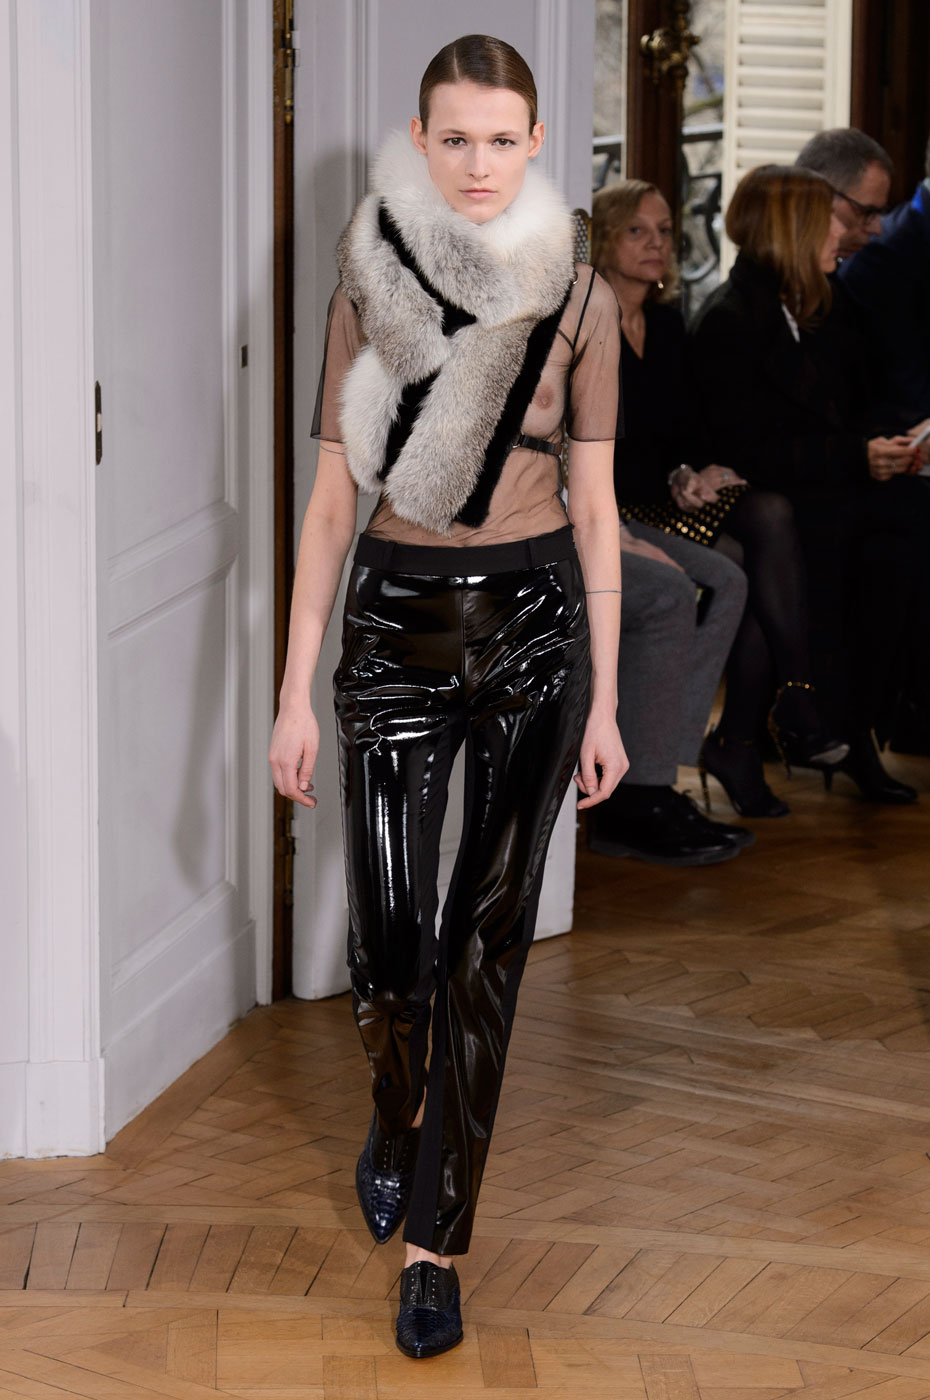 Bouchra-Jarrar-fashion-runway-show-haute-couture-paris-spring-summer-2015-the-impression-37